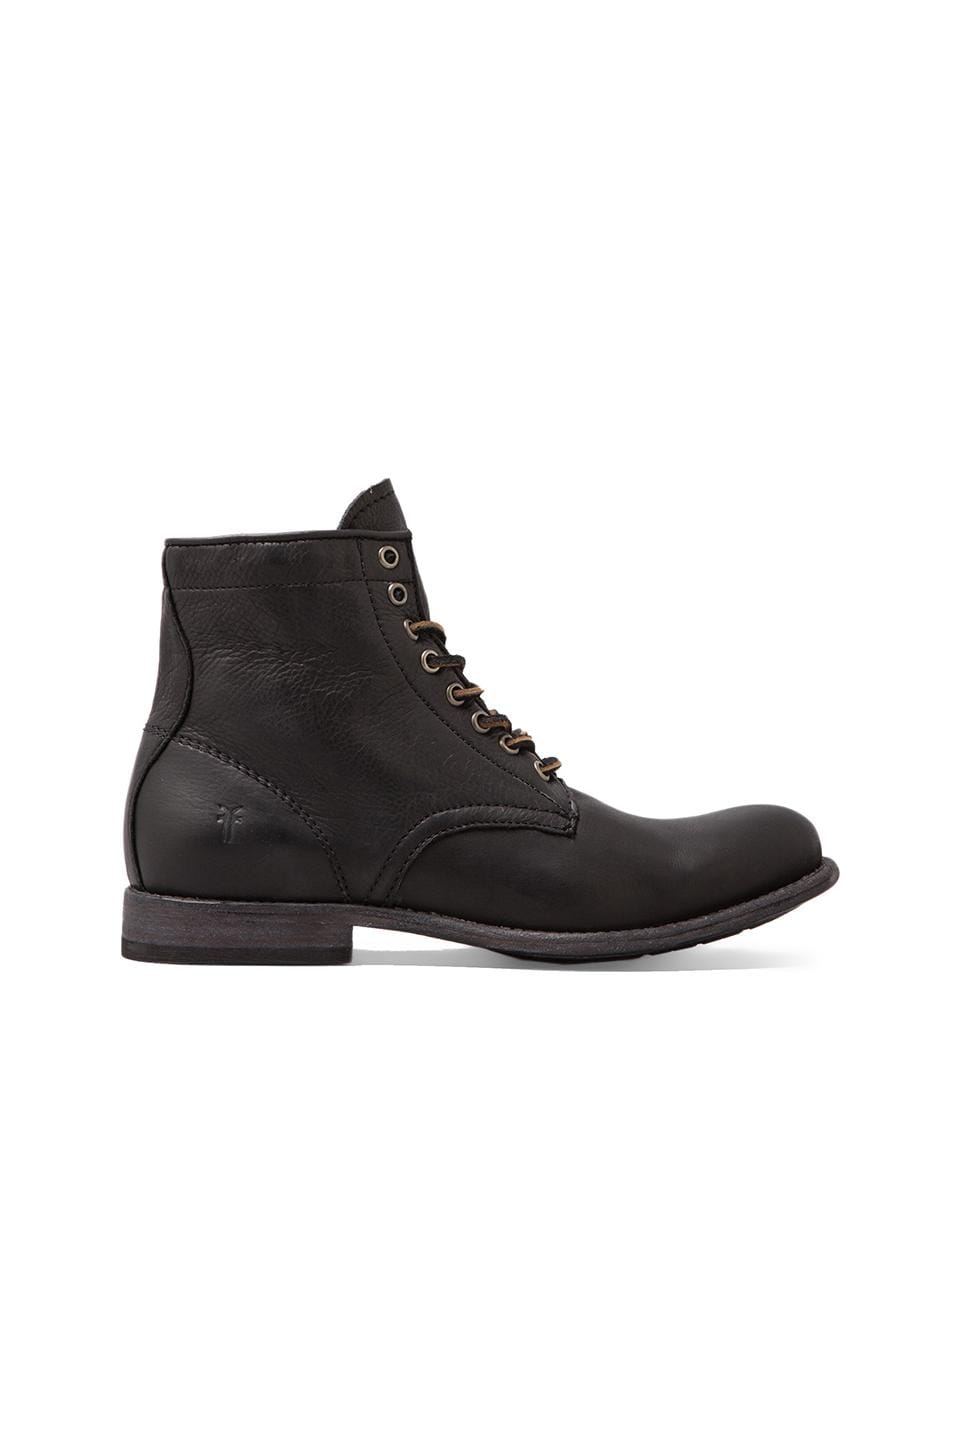 Frye Tyler Lace Up Boot in Black